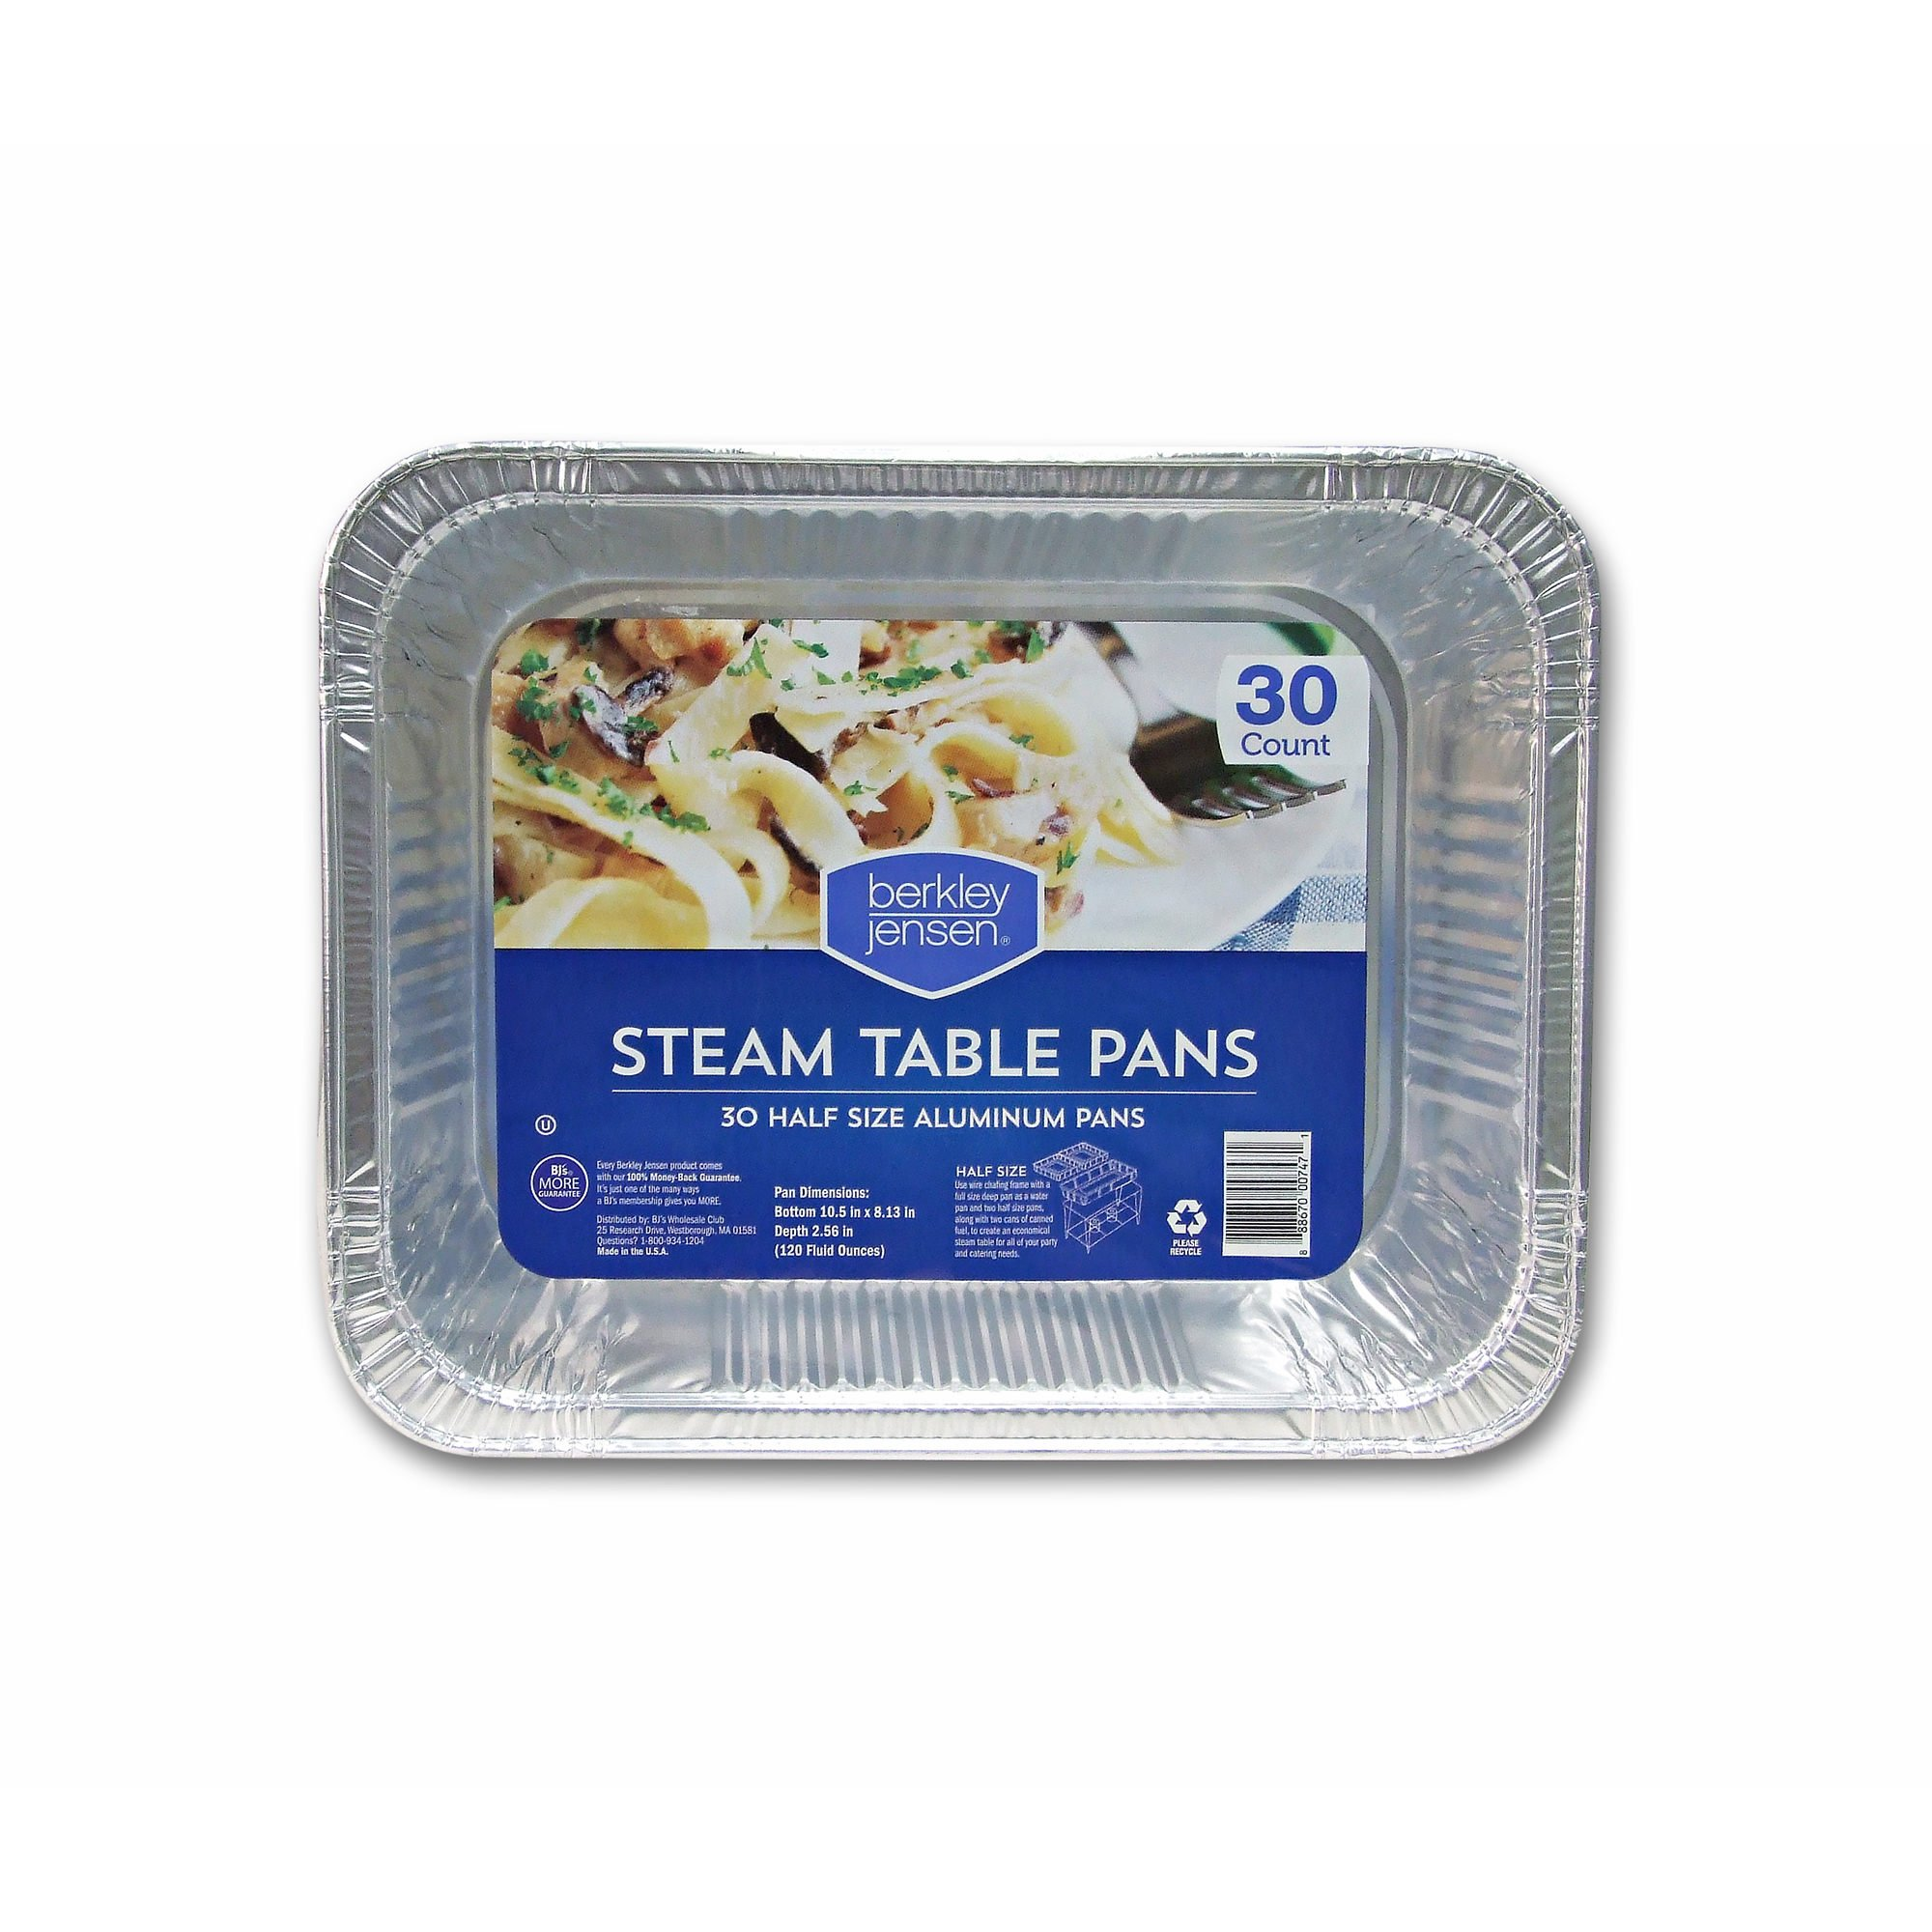 Berkley Jensen Half-Size Steam Table Pans, 30 Count